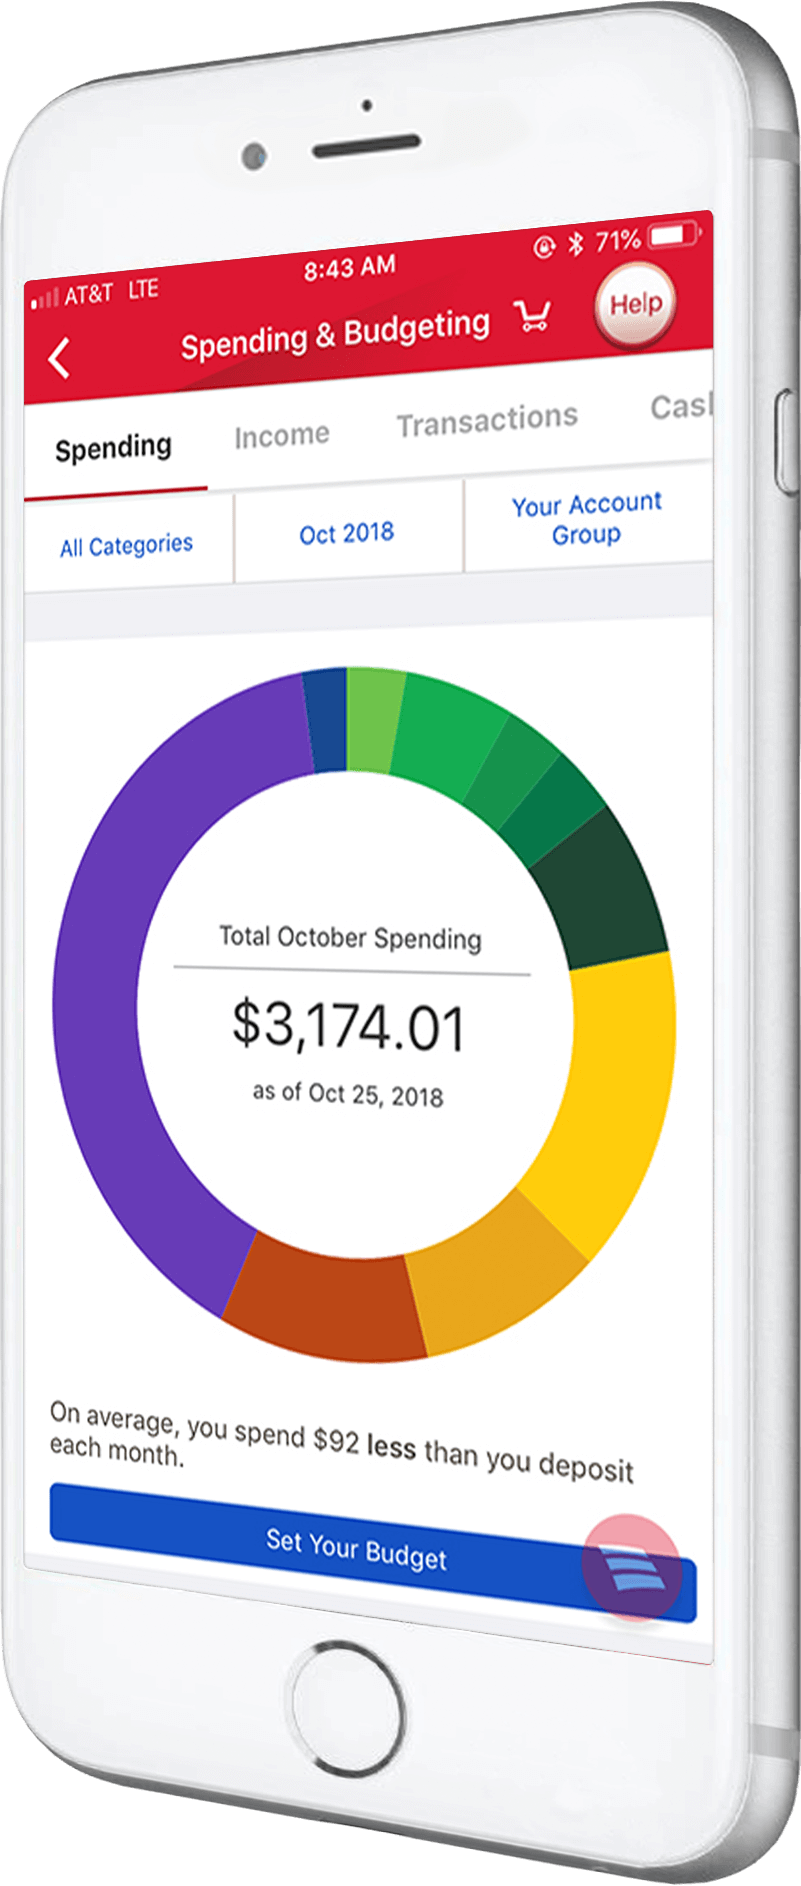 Image of a phone displaying the Spending & Budgeting tool.